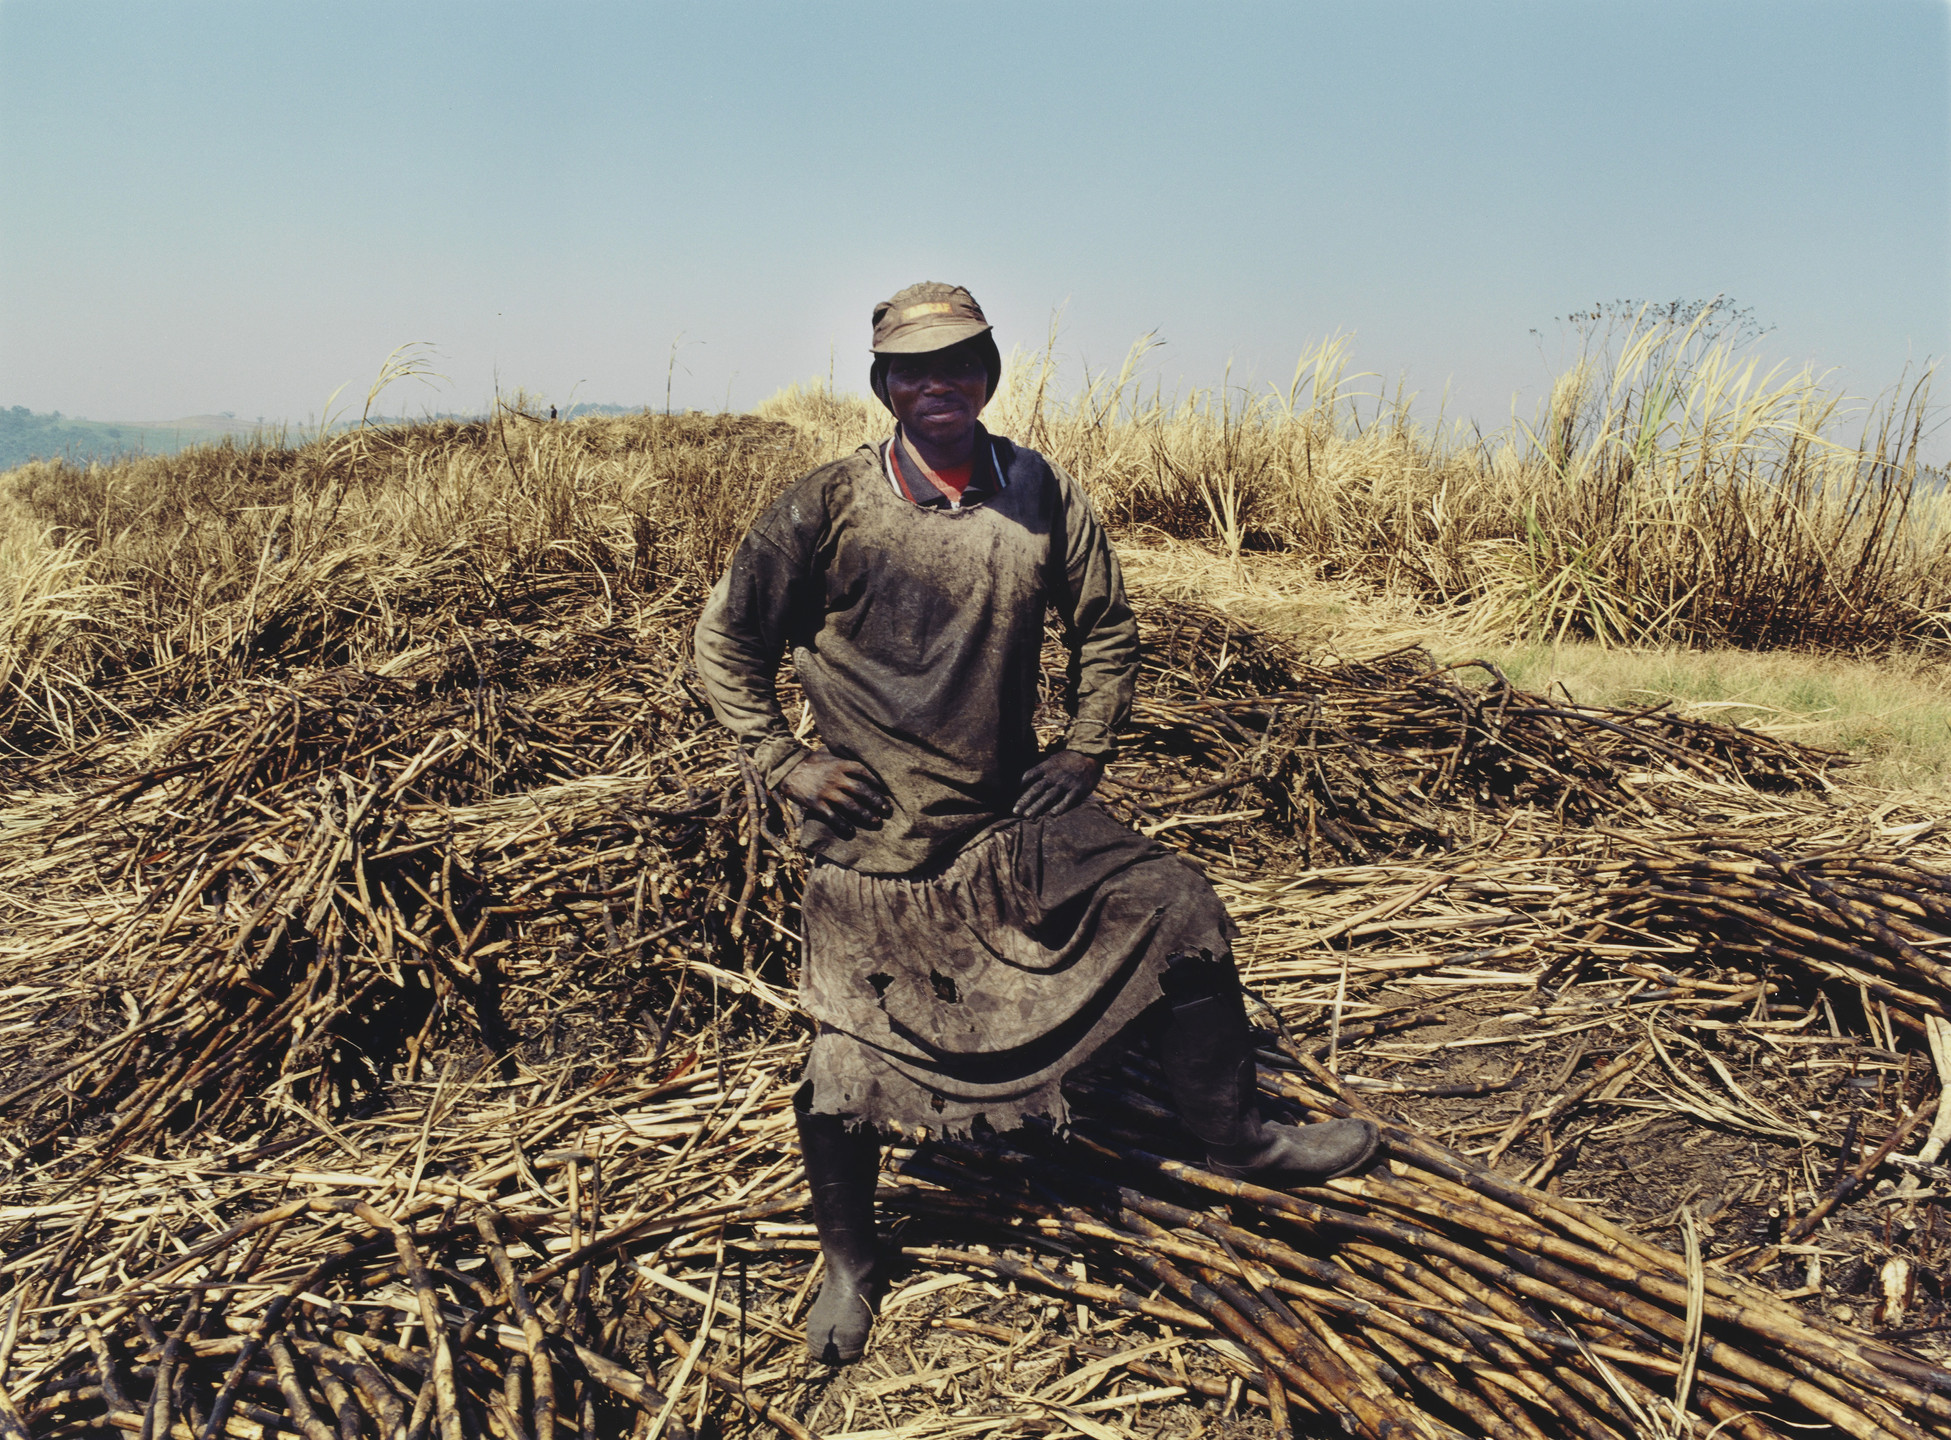 Zwelethu Mthethwa. Untitled, from the series Sugar Cane. 2003